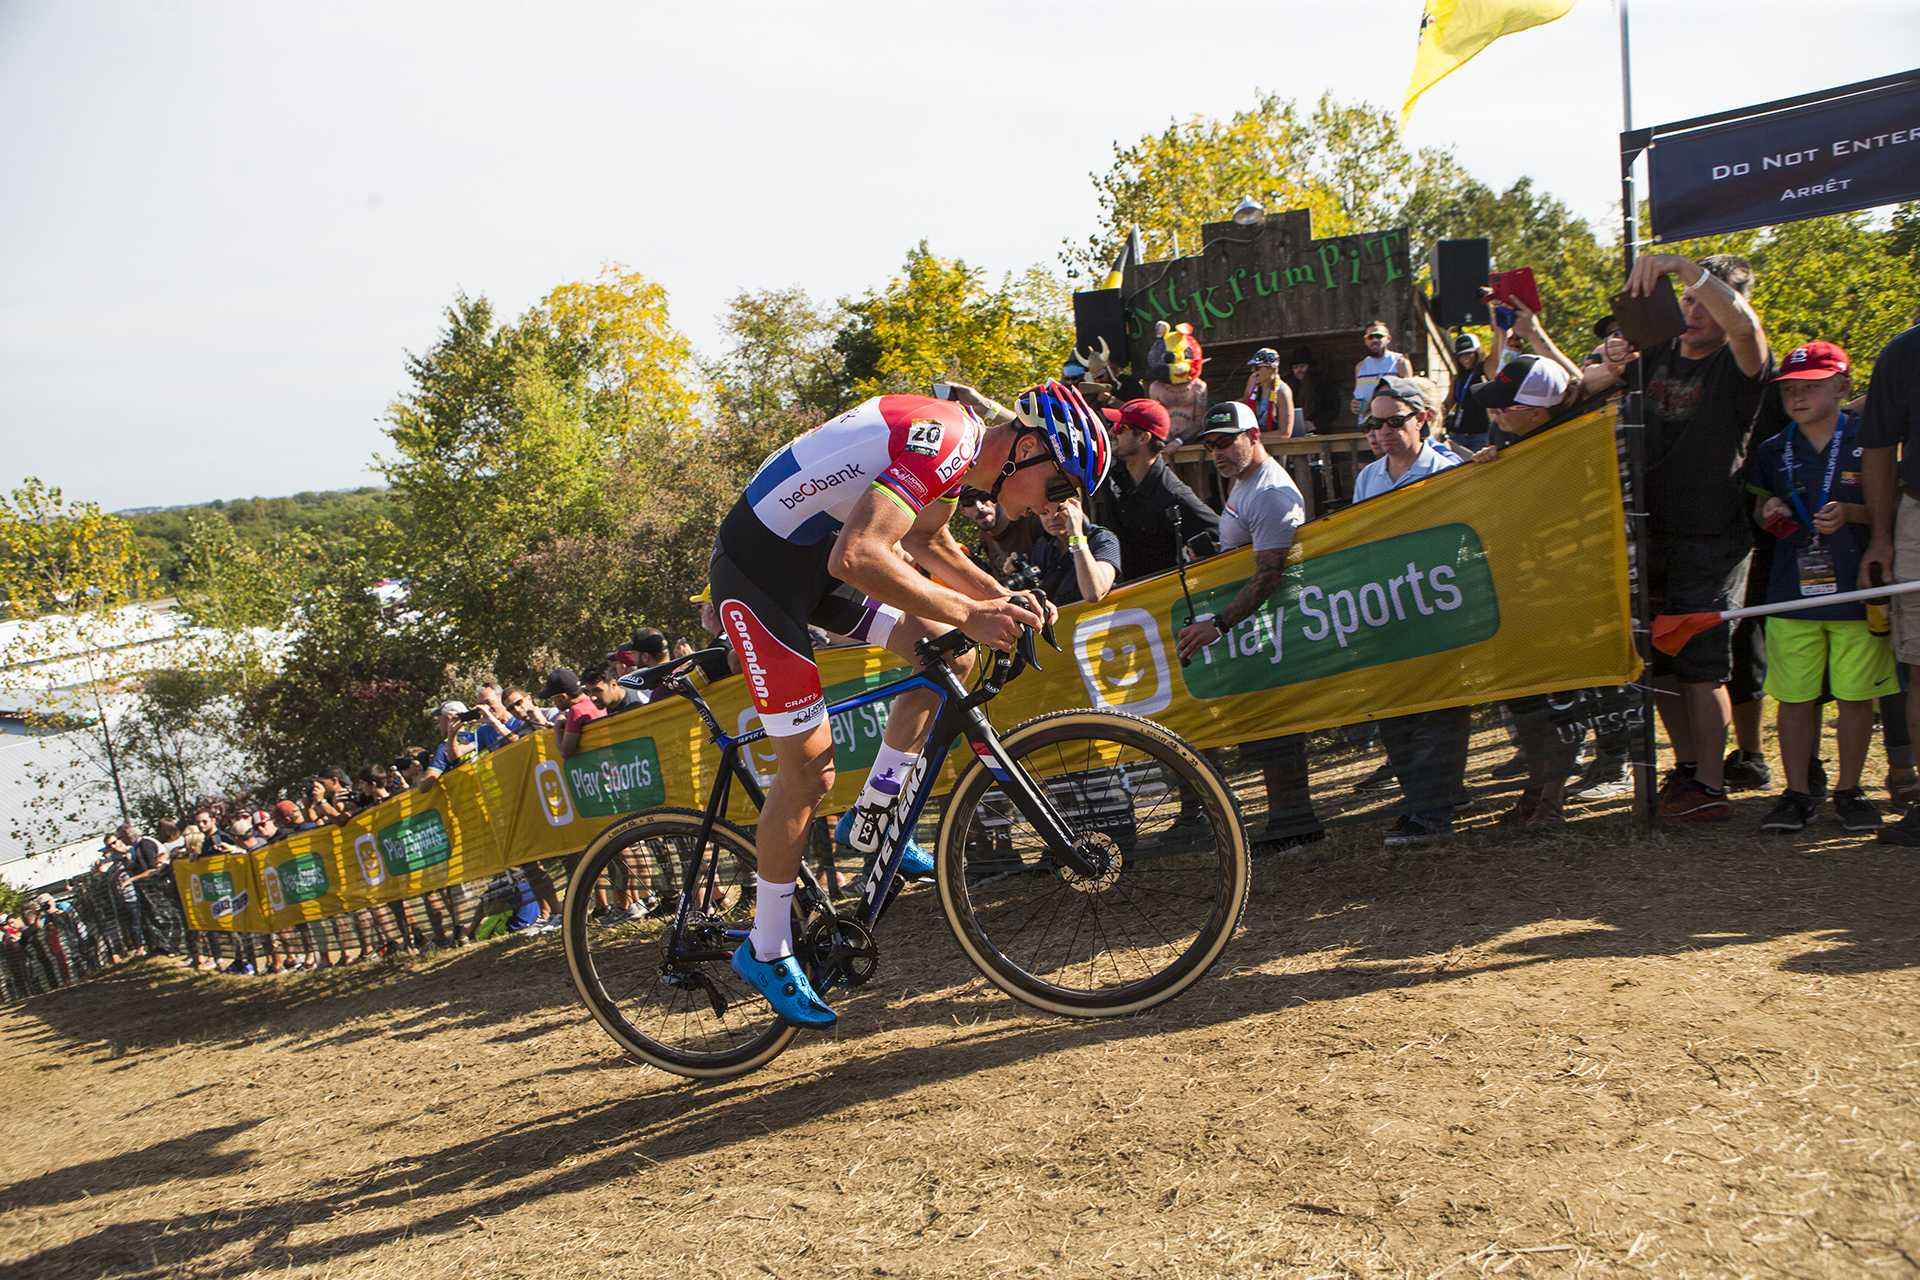 Beobank-Corendon's Mathieu Van Der Poel from the Netherlands rides up Mt. Krumpit during the UCI Telenet Men's World Cup cyclocross race at Jinglecross on the Johnson County fairgrounds on Sunday, Sept. 17, 2017. Sunday began with a kids events, a speedo race and a dog race followed by the women's and men's UCI world cup races. (Joseph Cress/The Daily Iowan)